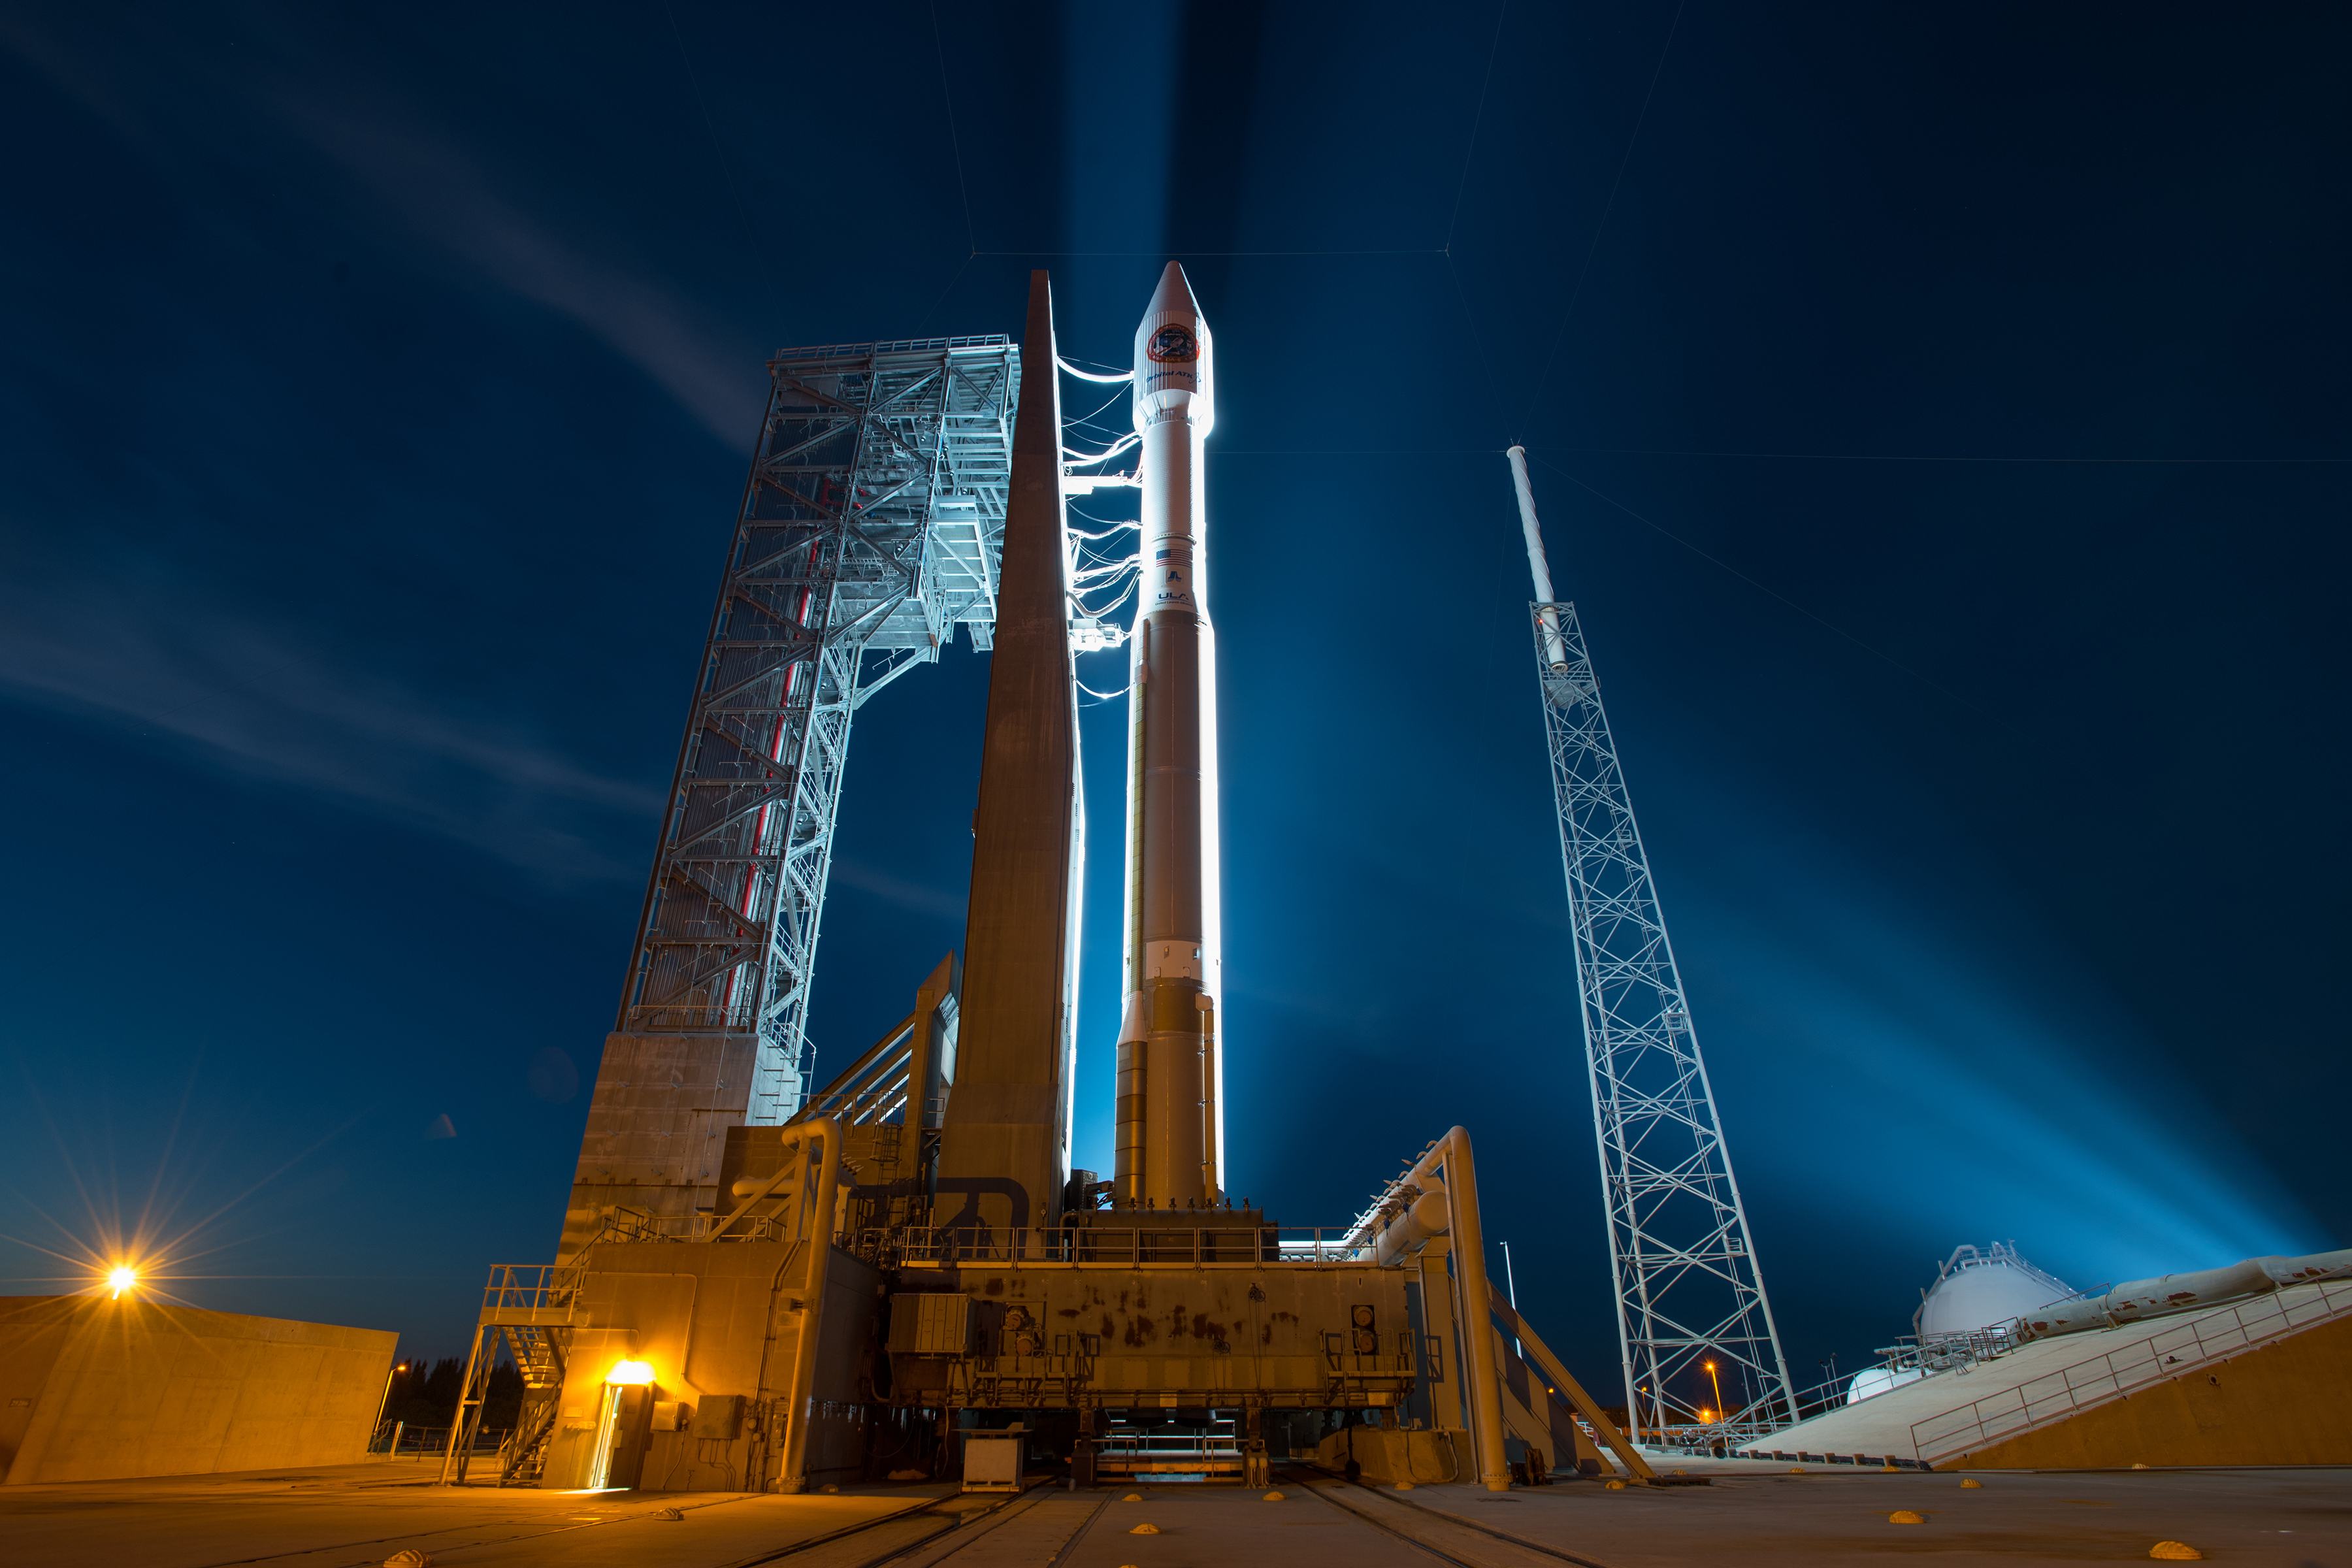 After successful Antares launch, NASA wants Orbital ATK to